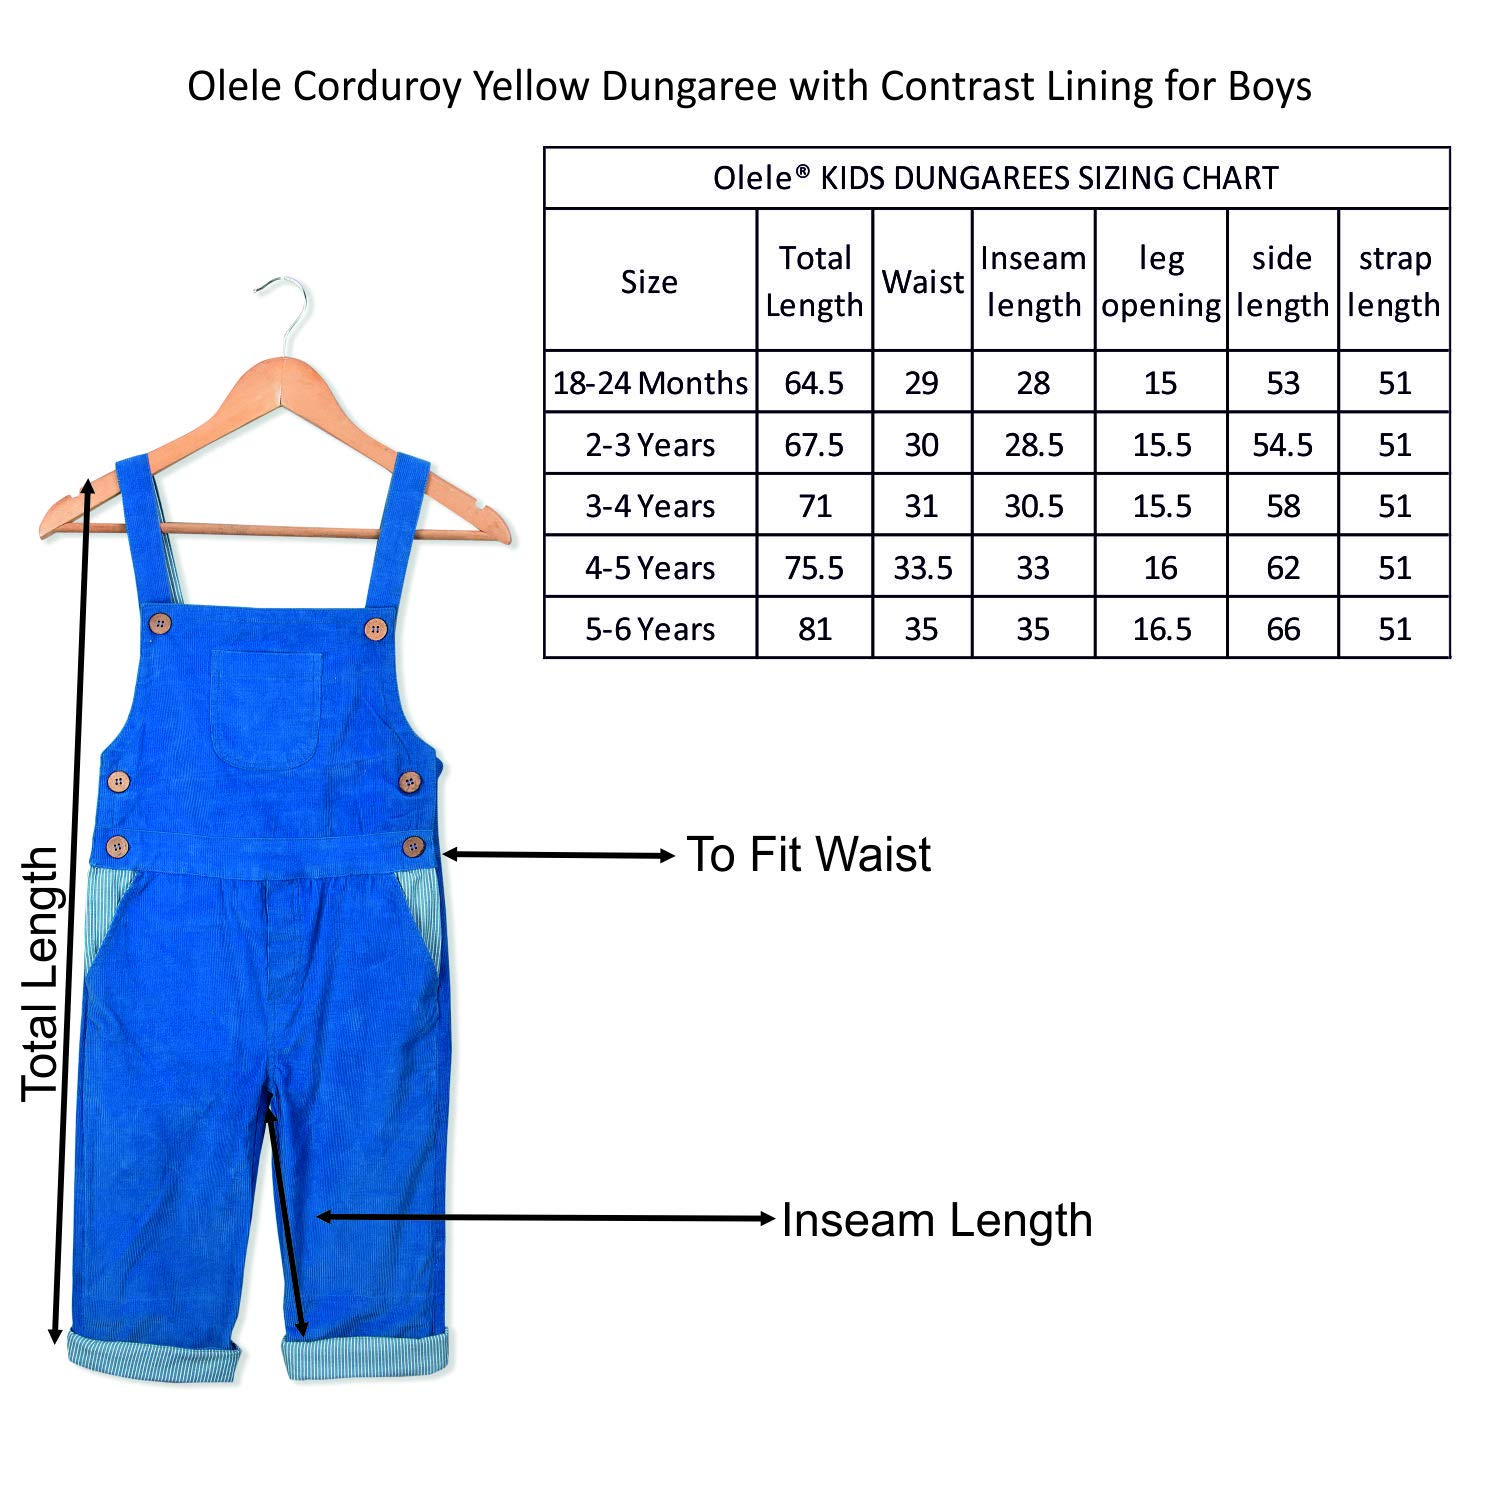 9bbacc73a Olele® Corduroy Dungaree with Contrast Lining for Boys